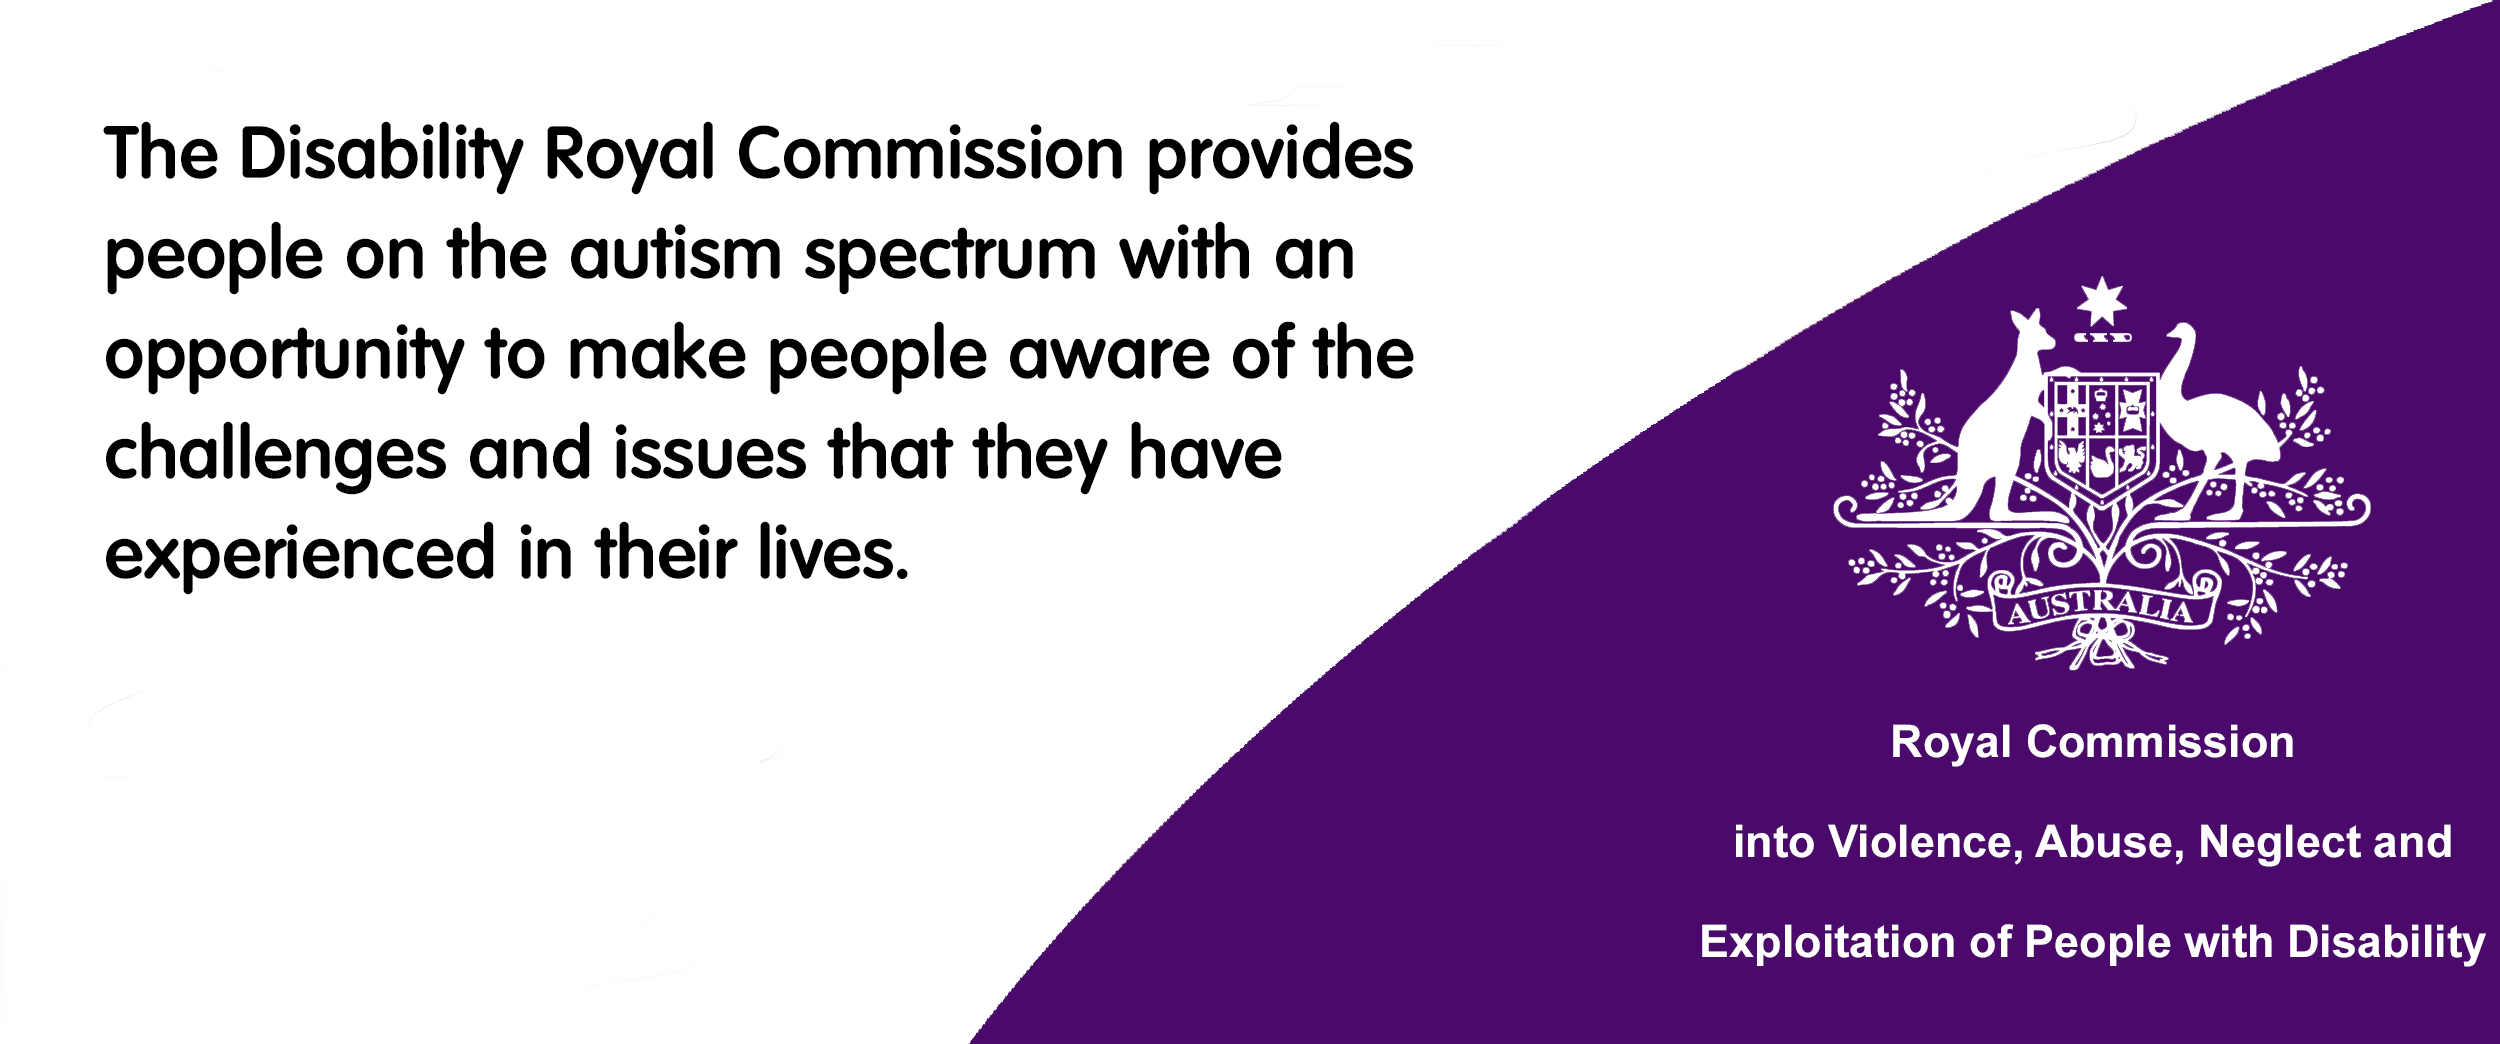 Royal Commission into Violence, Abuse, Neglect and Exploitation of People with a Disability